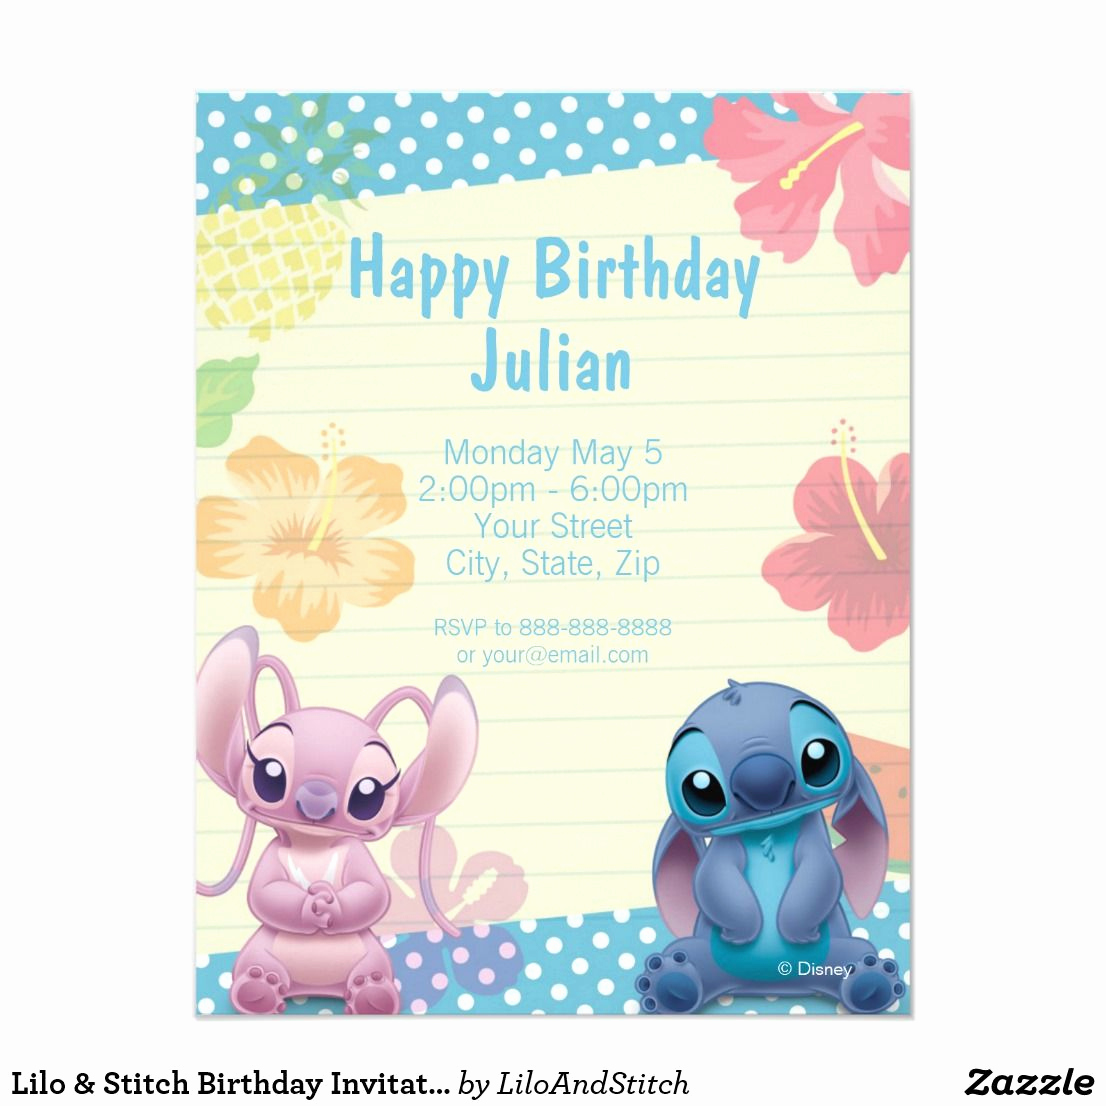 Lilo and Stitch Invitation Luxury Lilo & Stitch Birthday Invitation